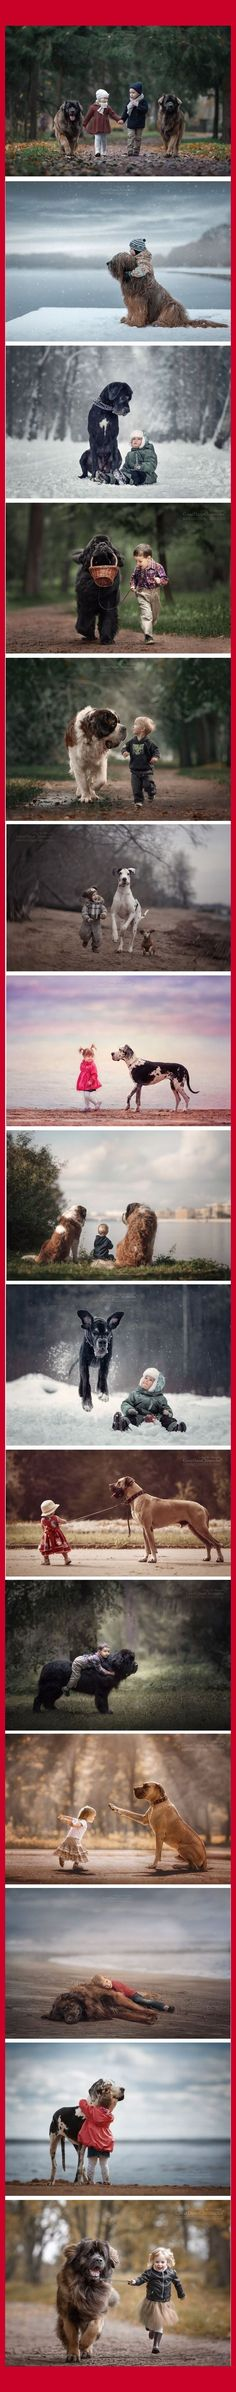 LITTLE KIDS BIG DOGS photographer Andy Seliverstoff by James Gould-Bourn via: www.boredpanda.com/little-kids-big-dogs-photography-andy-seliverstoff/?cexp_id=11